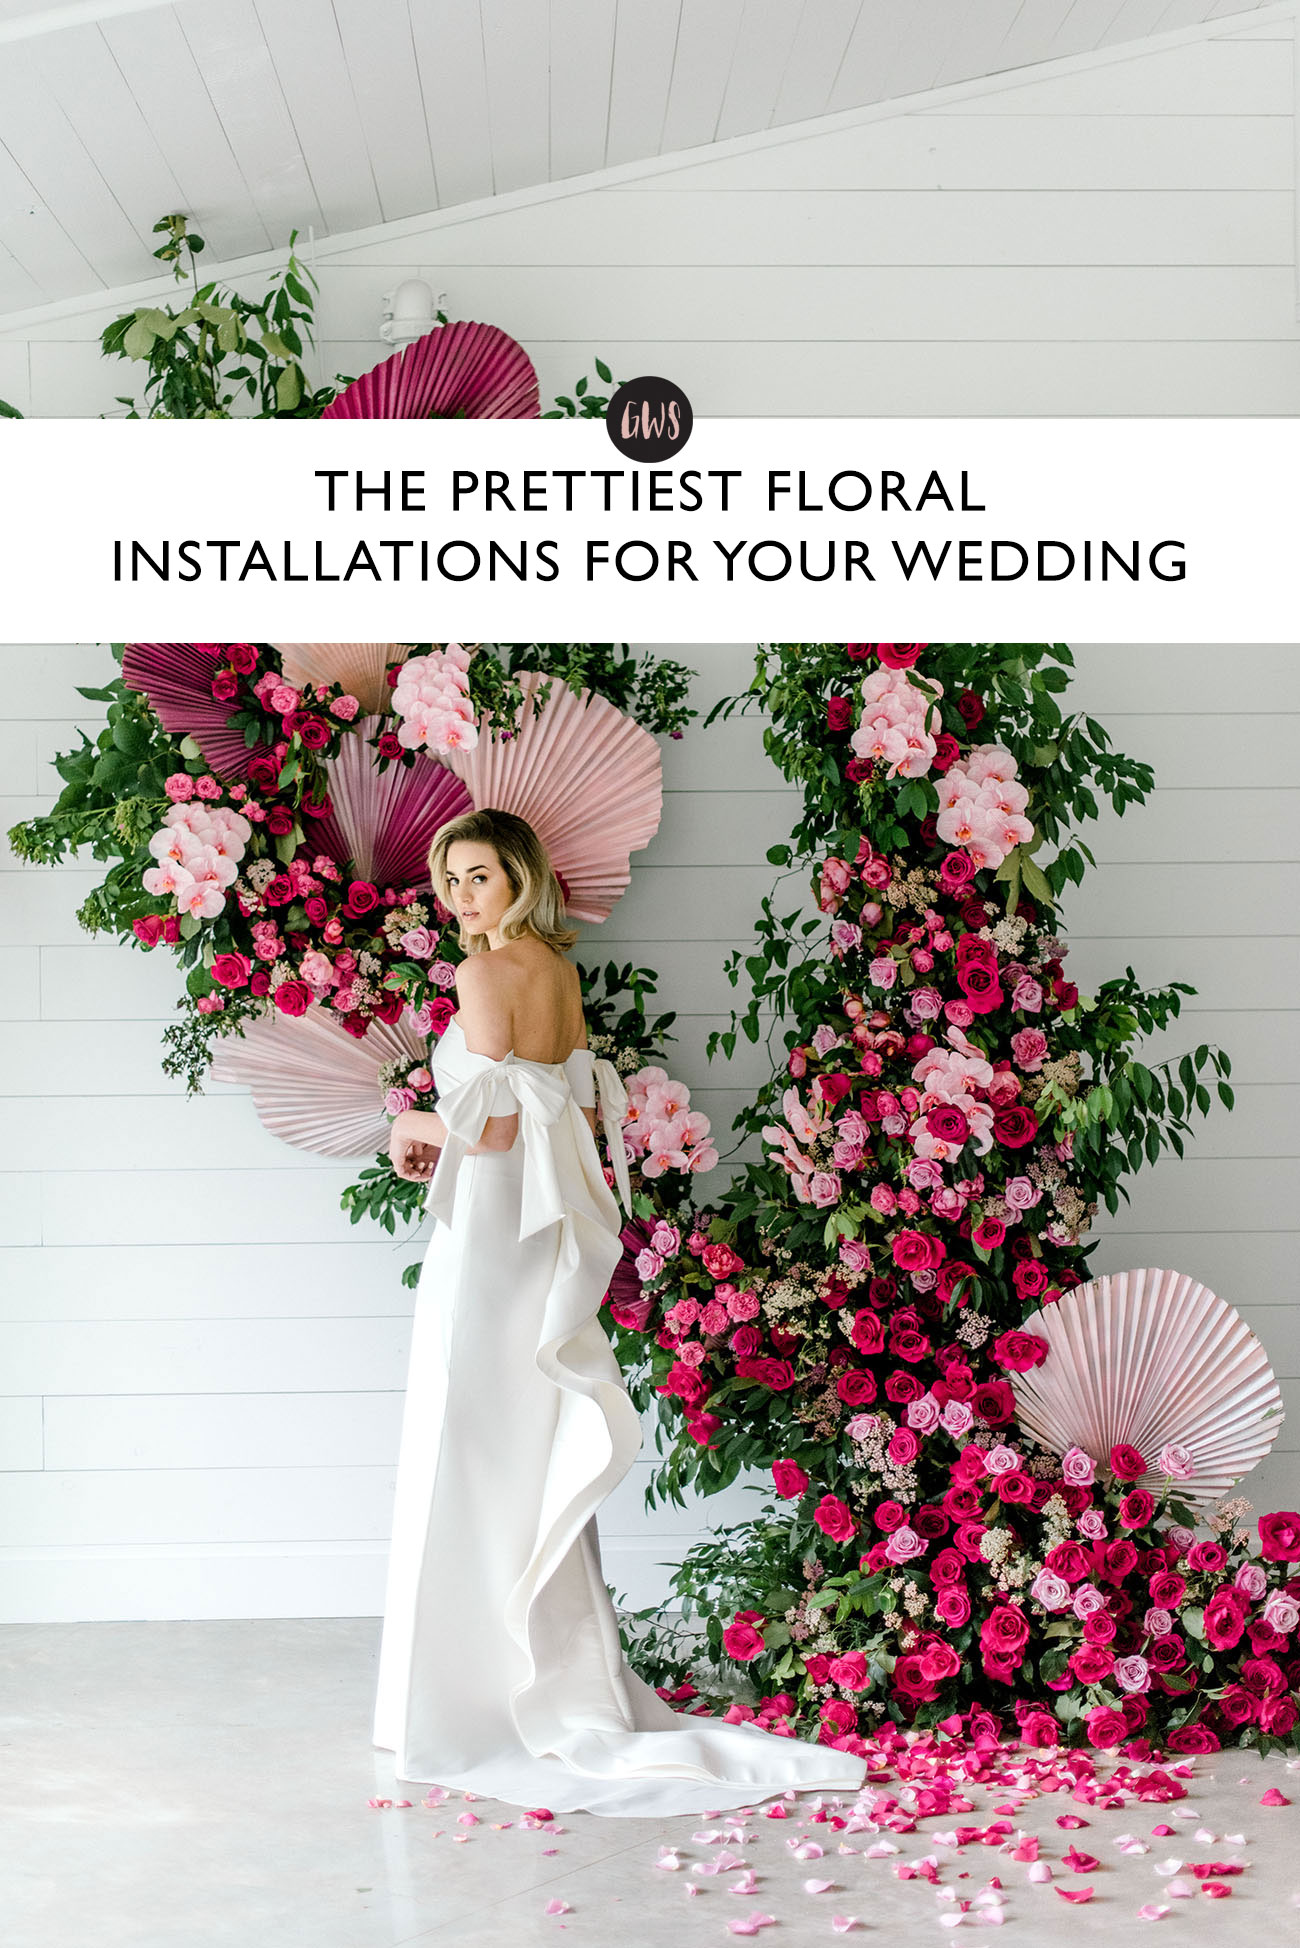 dreamy floral installations for your wedding day